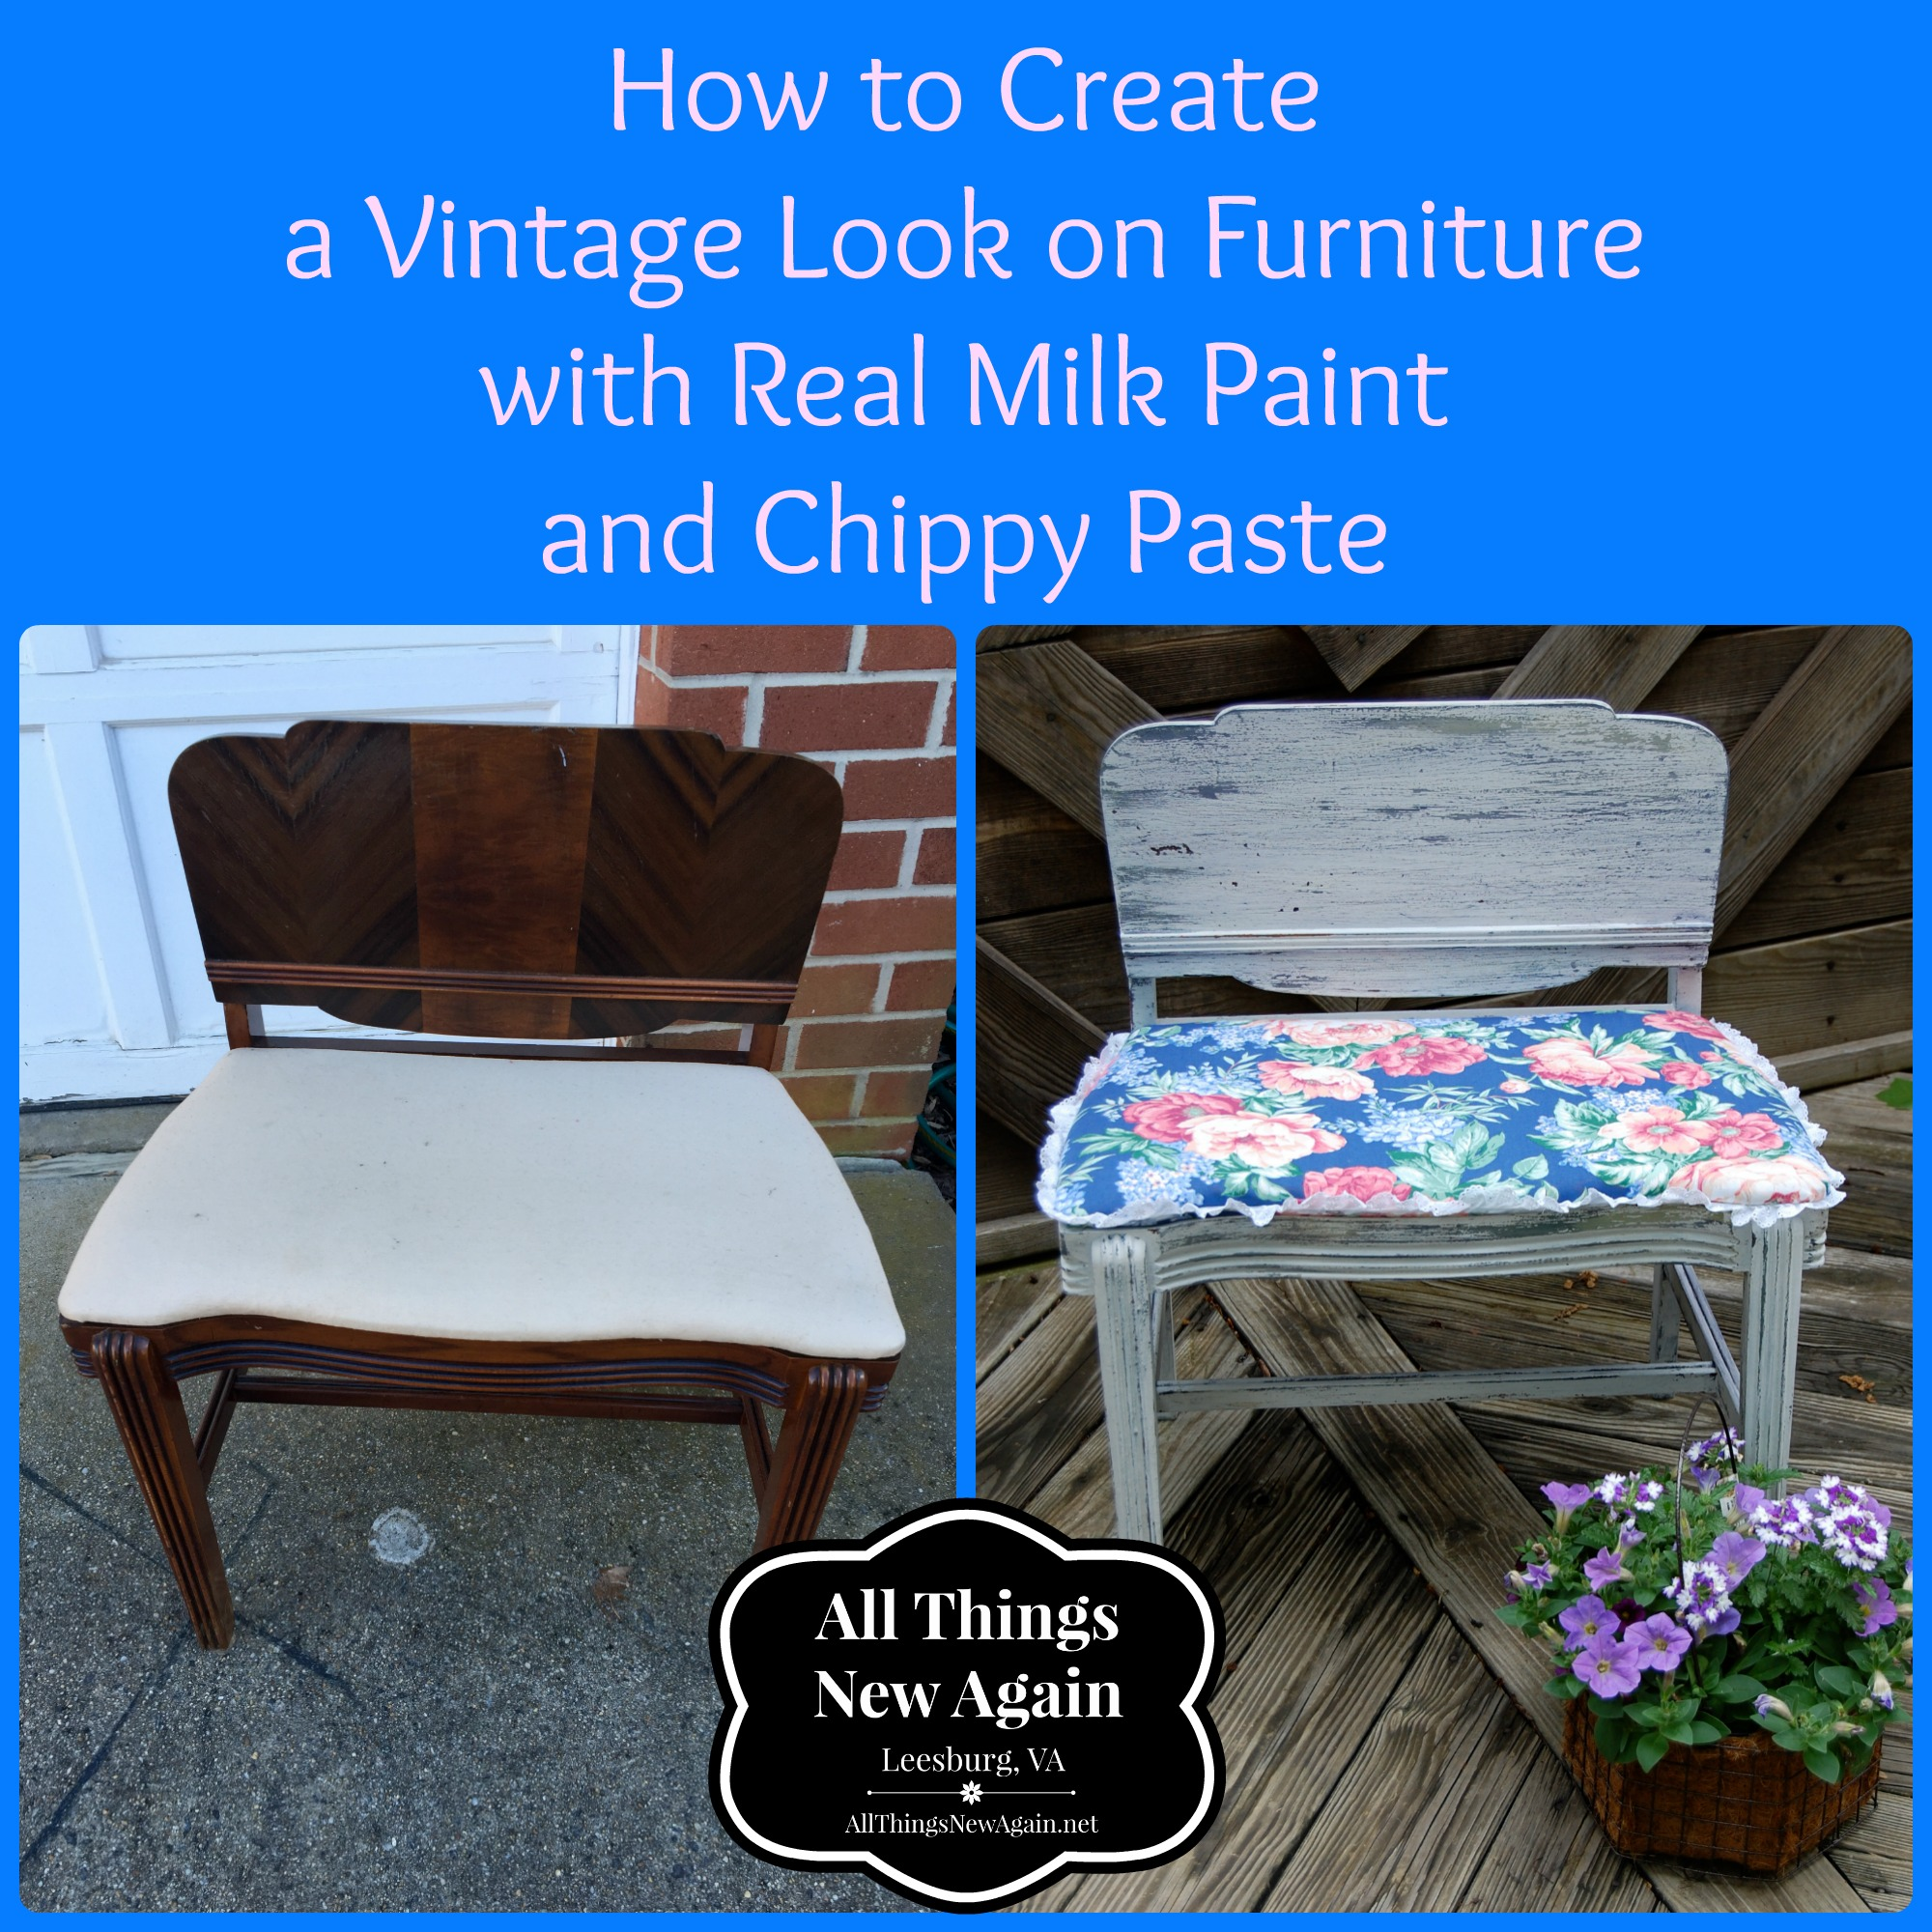 How To Create A Vintage Look On Furniture With Real Milk Paint And Chippy  Paste | All Things New Again